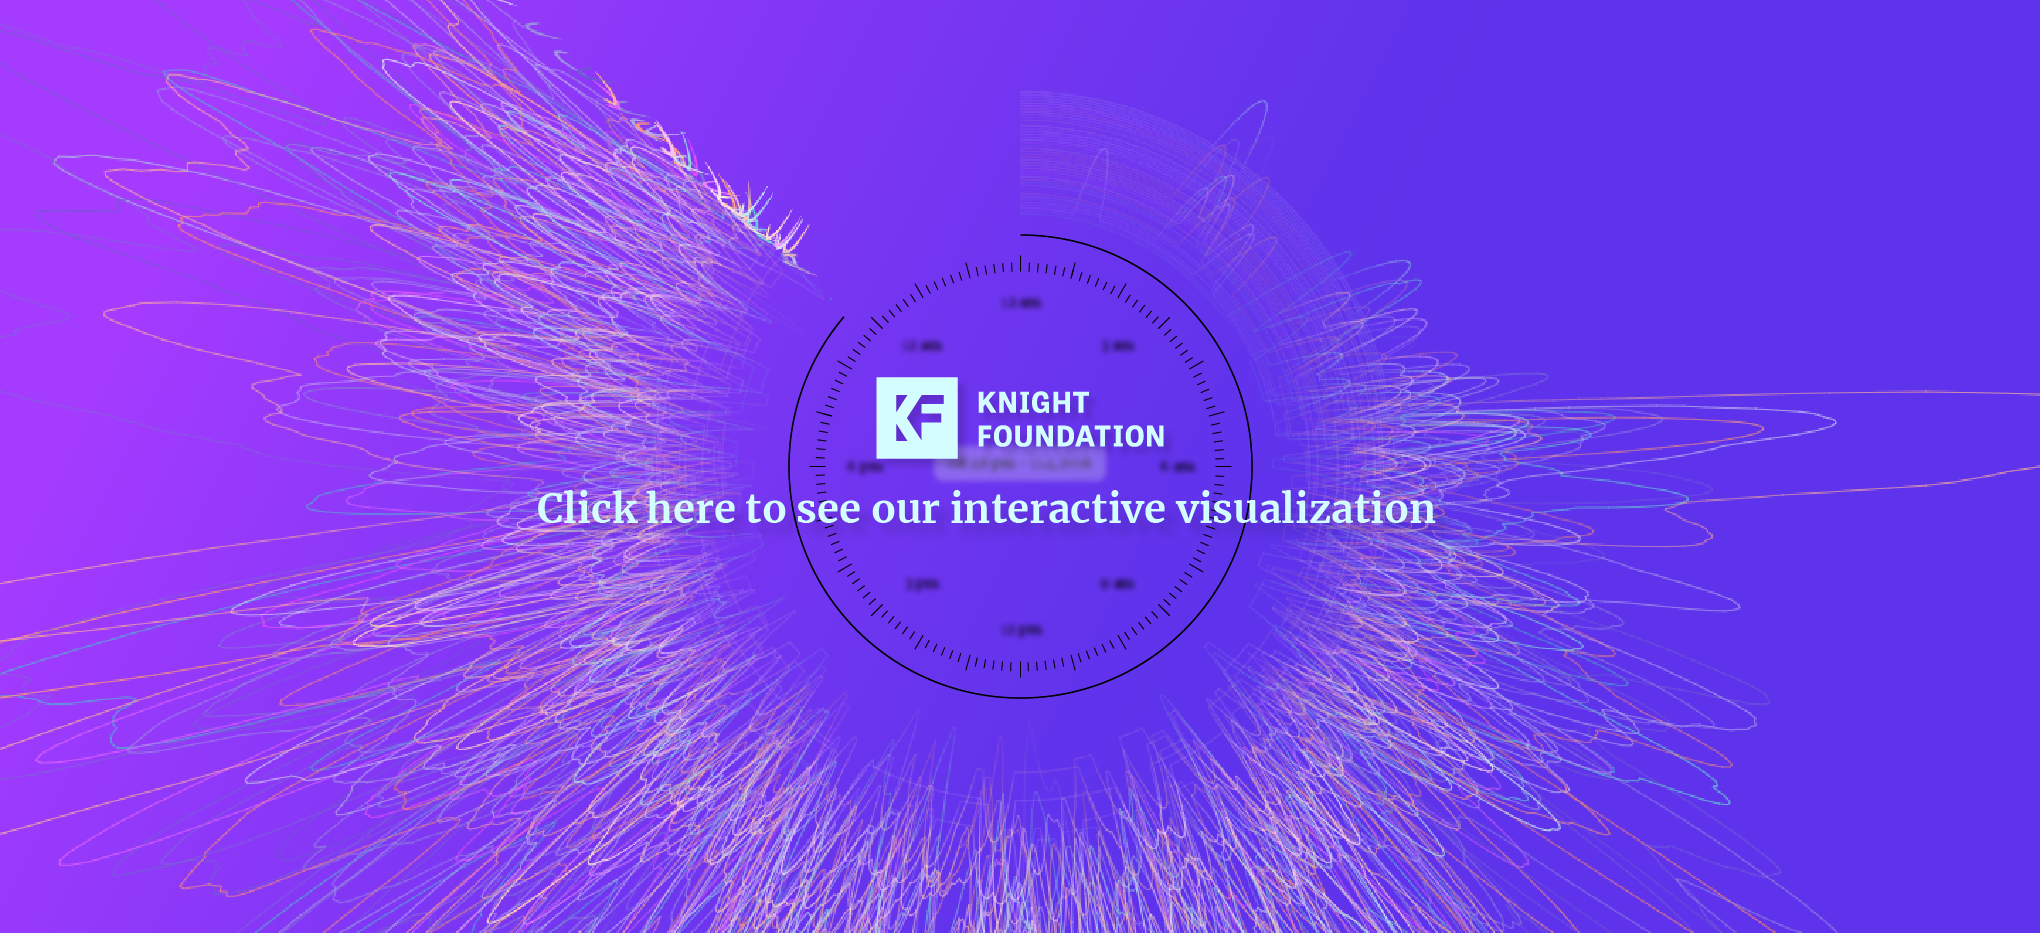 """<p><a href=""""https://www.knightfoundation.org/features/misinfo"""">Click here to see our interactive visualization</a></p>"""